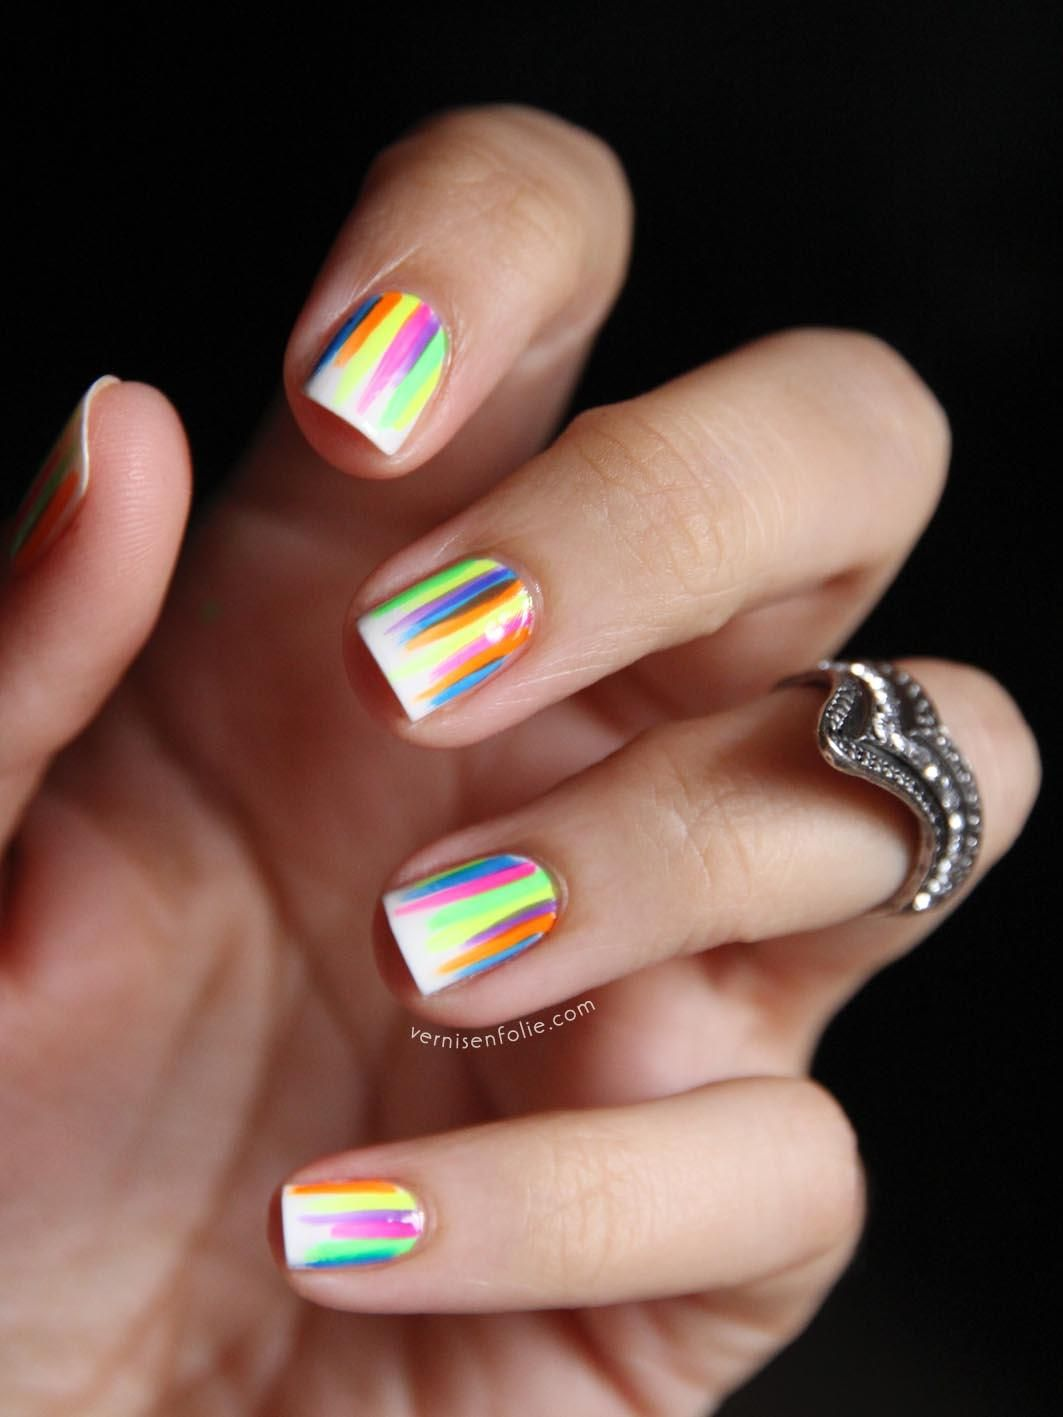 Do it yourself nails designs nail designs pinterest do it yourself nails designs solutioingenieria Gallery